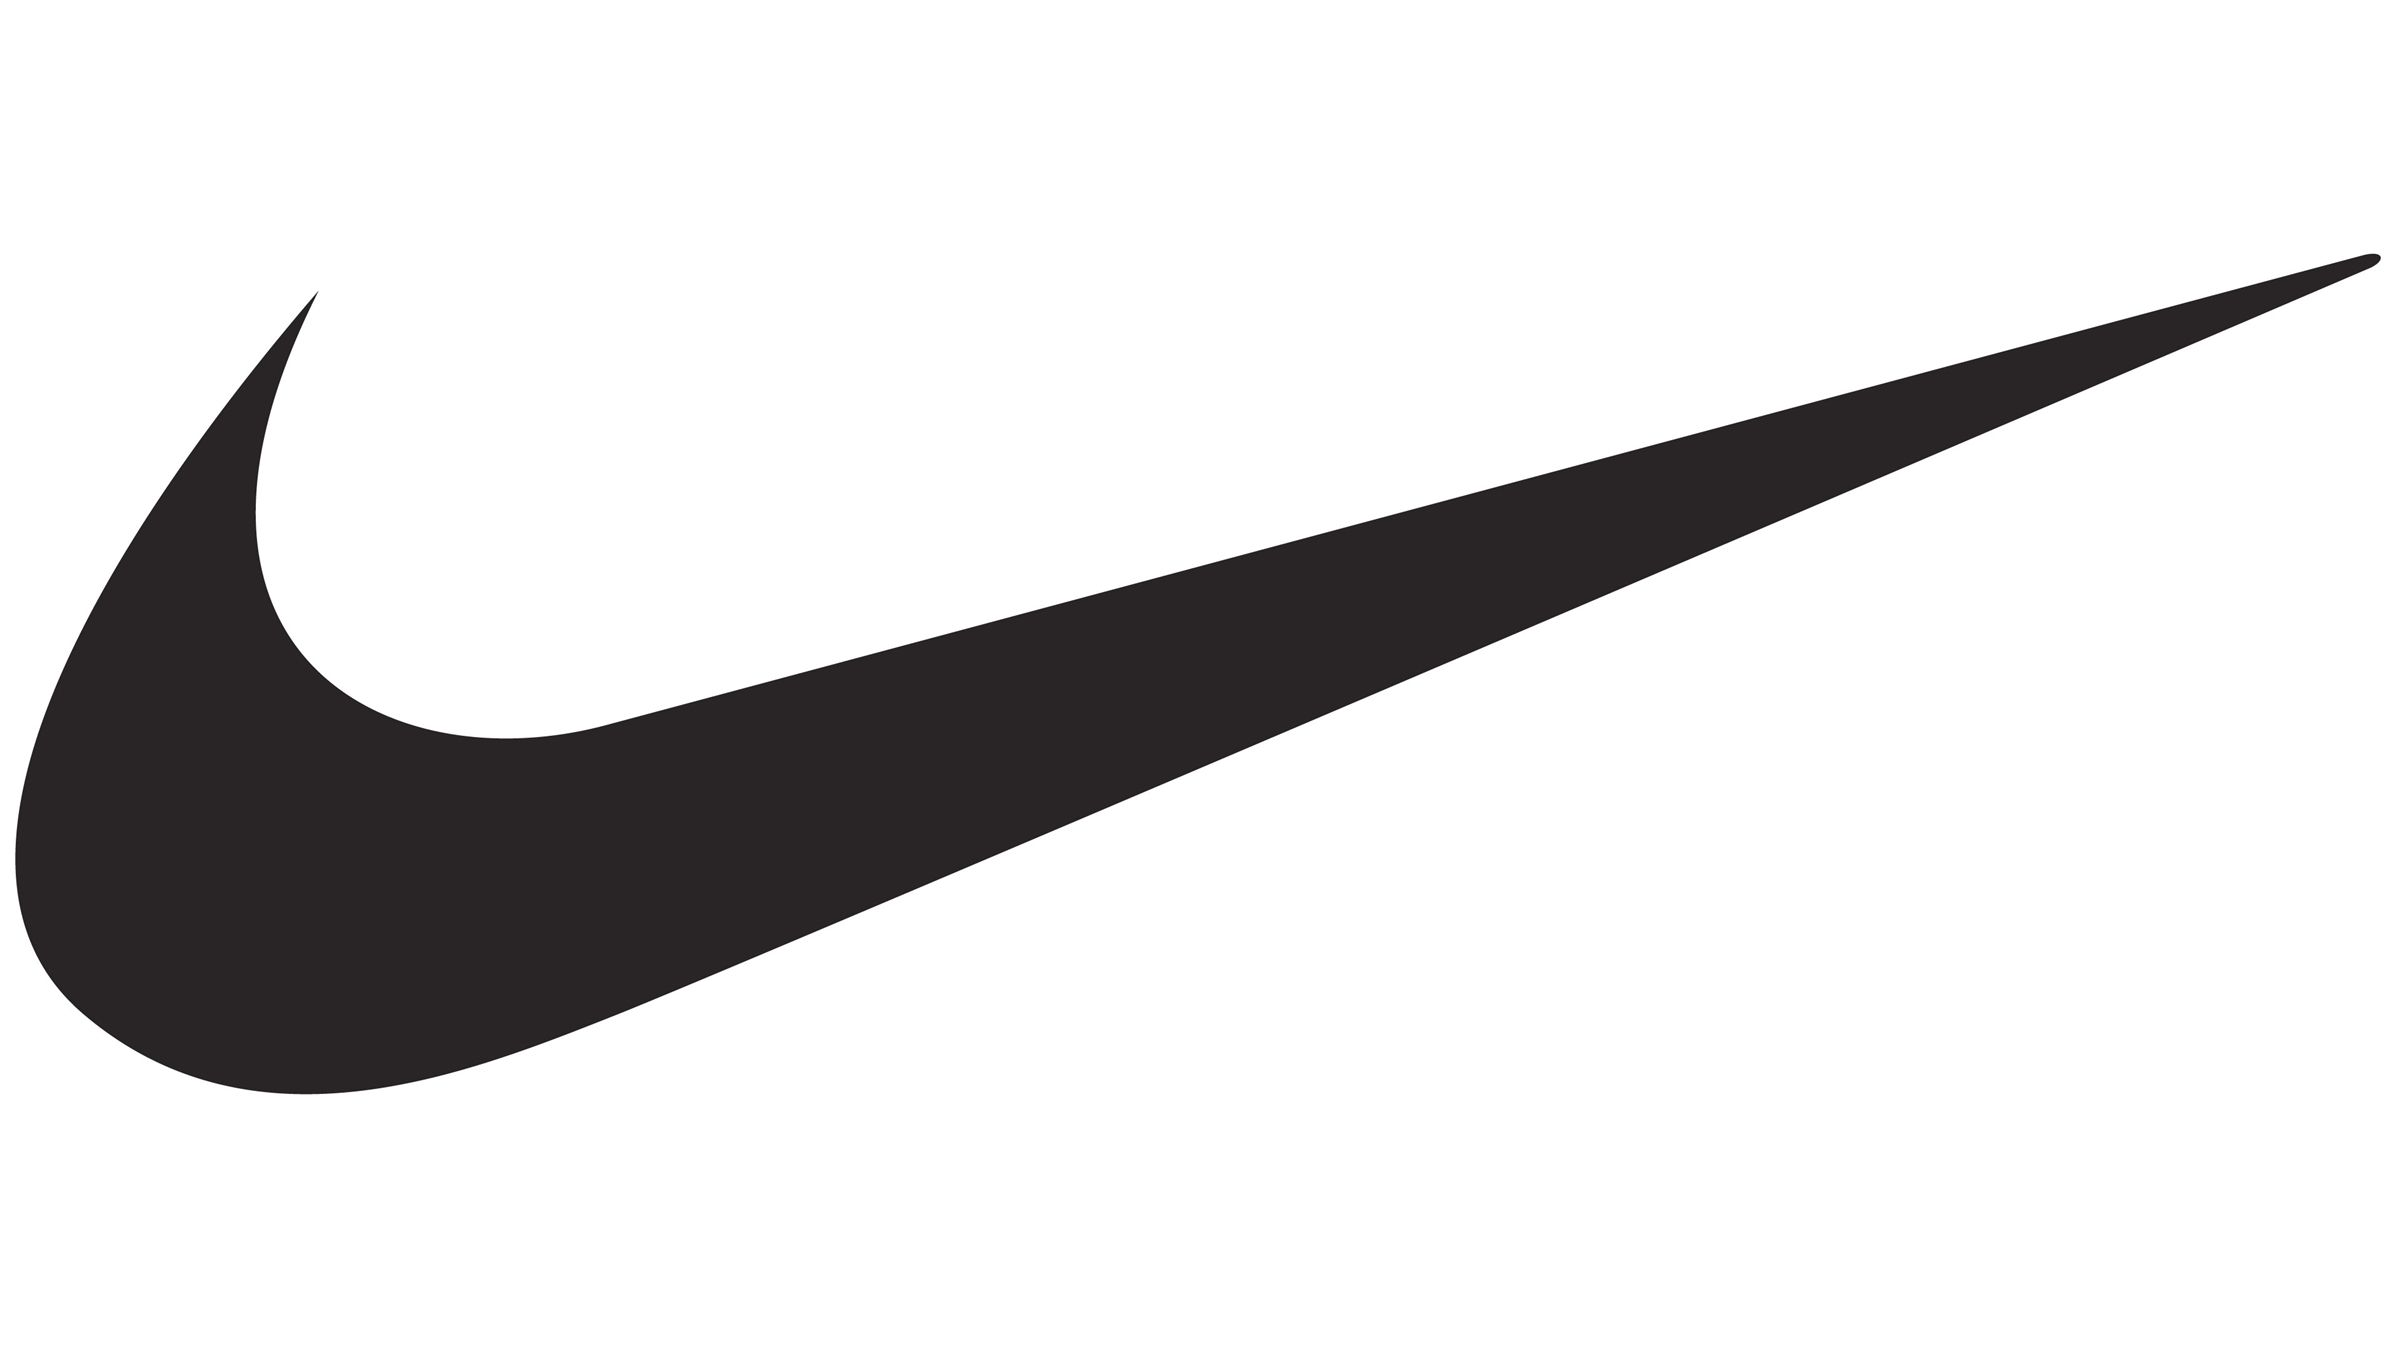 KCD is a Nike sponsored school